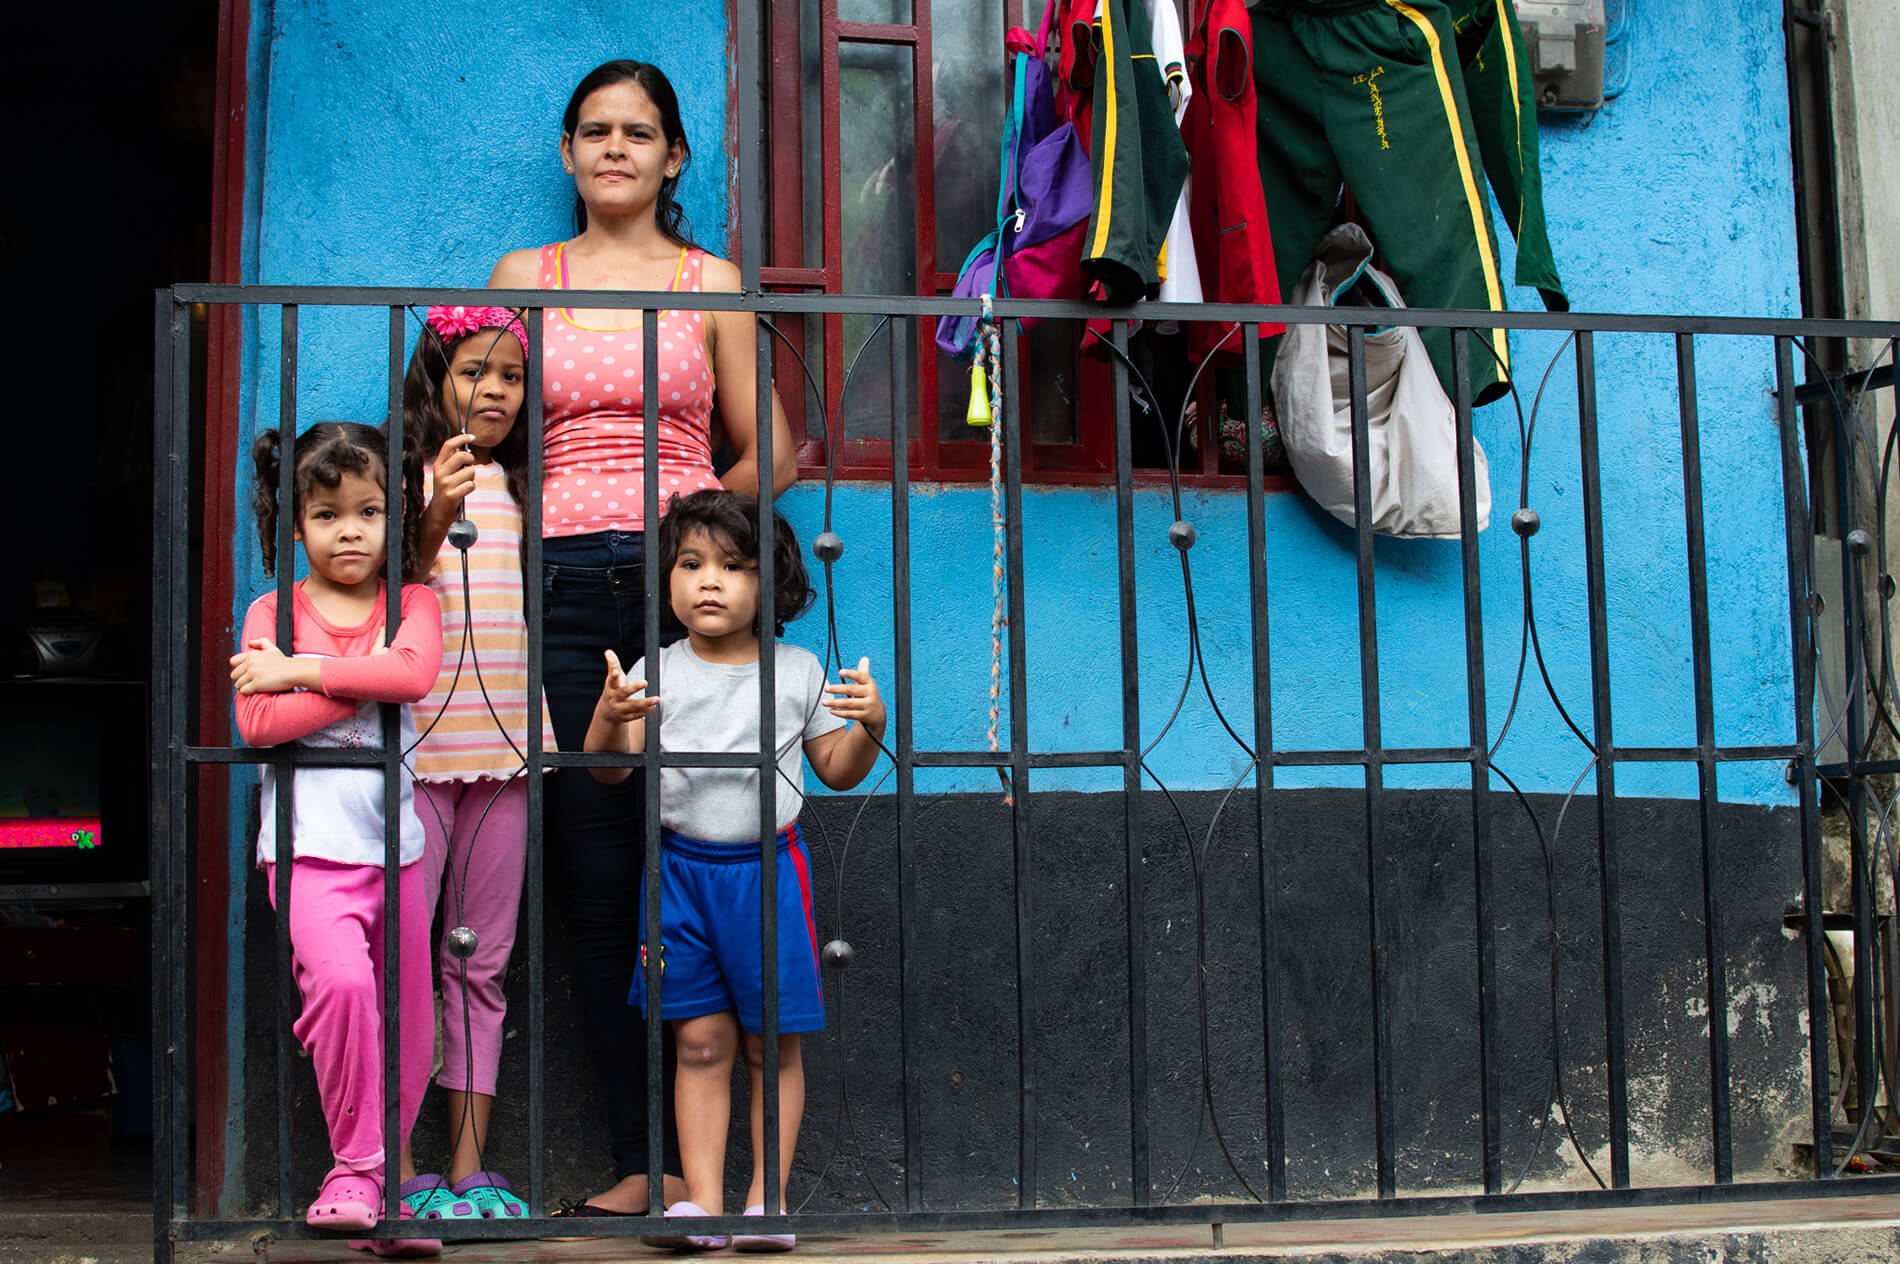 A picture of a scene from the streets of Medellín, Colombia